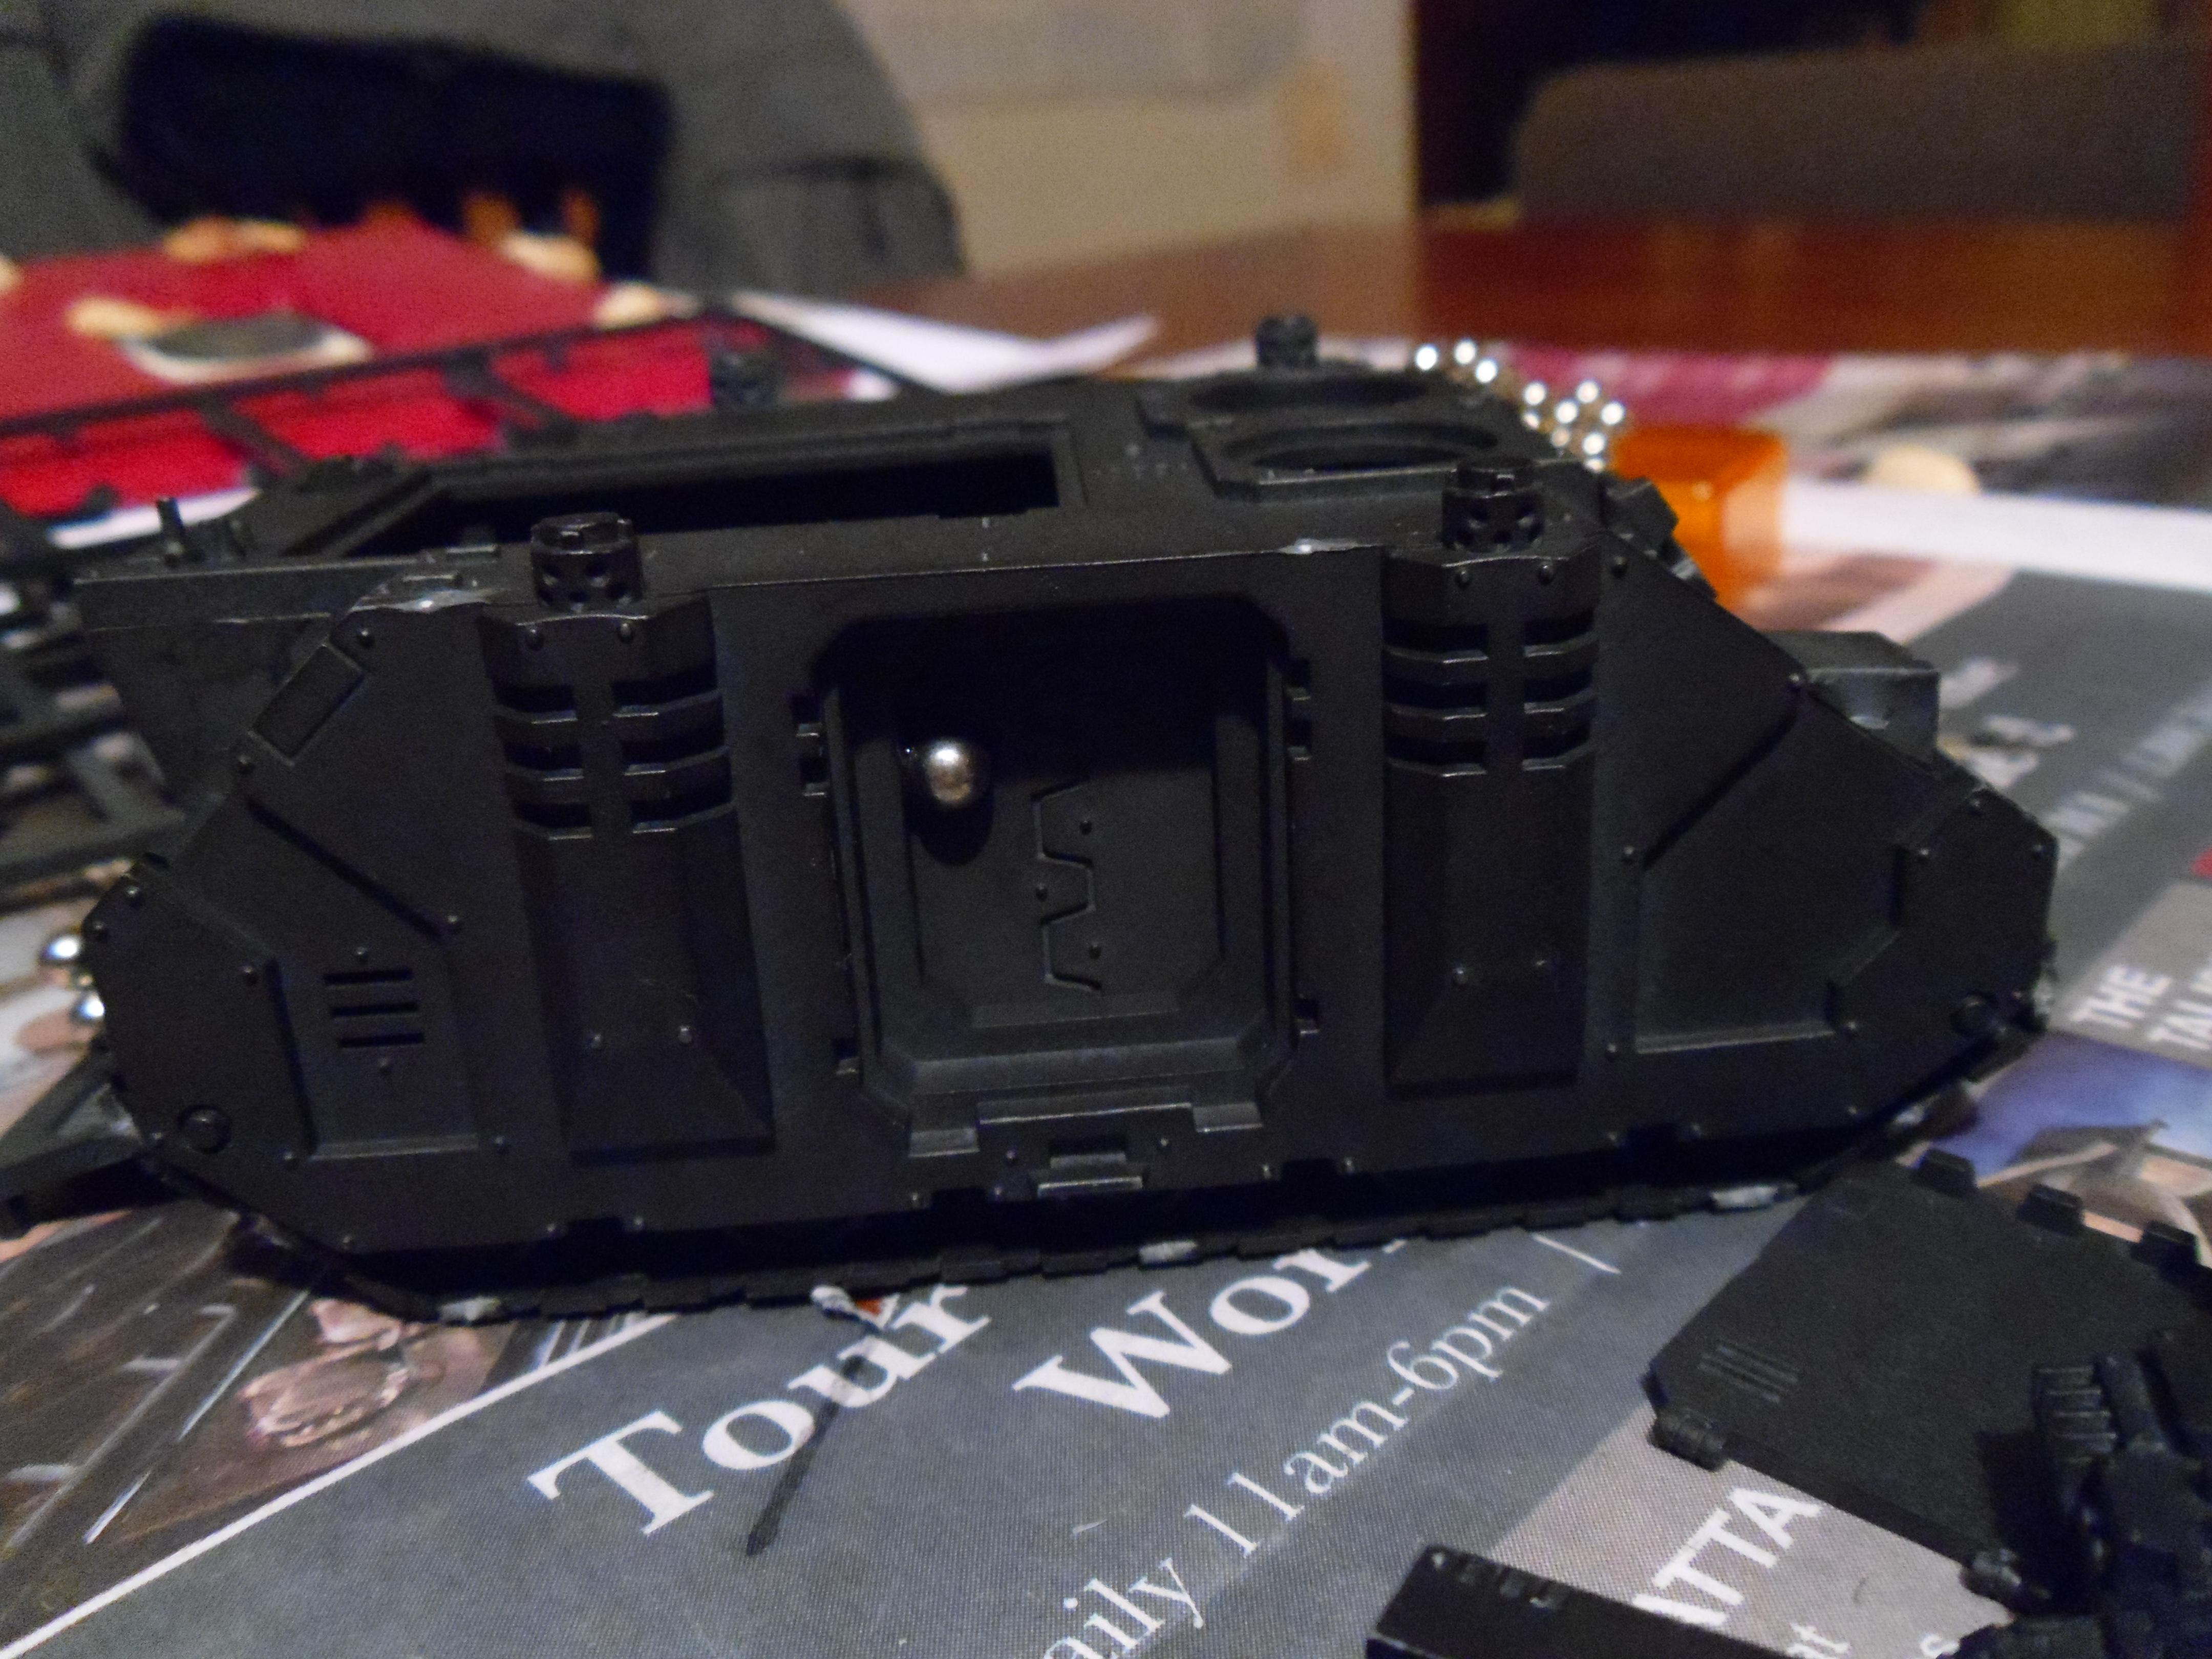 Armor, Customizable, Heavy Support, Imperial Fists, Magnet, Predator, Space Marines, Tank, Warhammer 40,000, Work In Progress